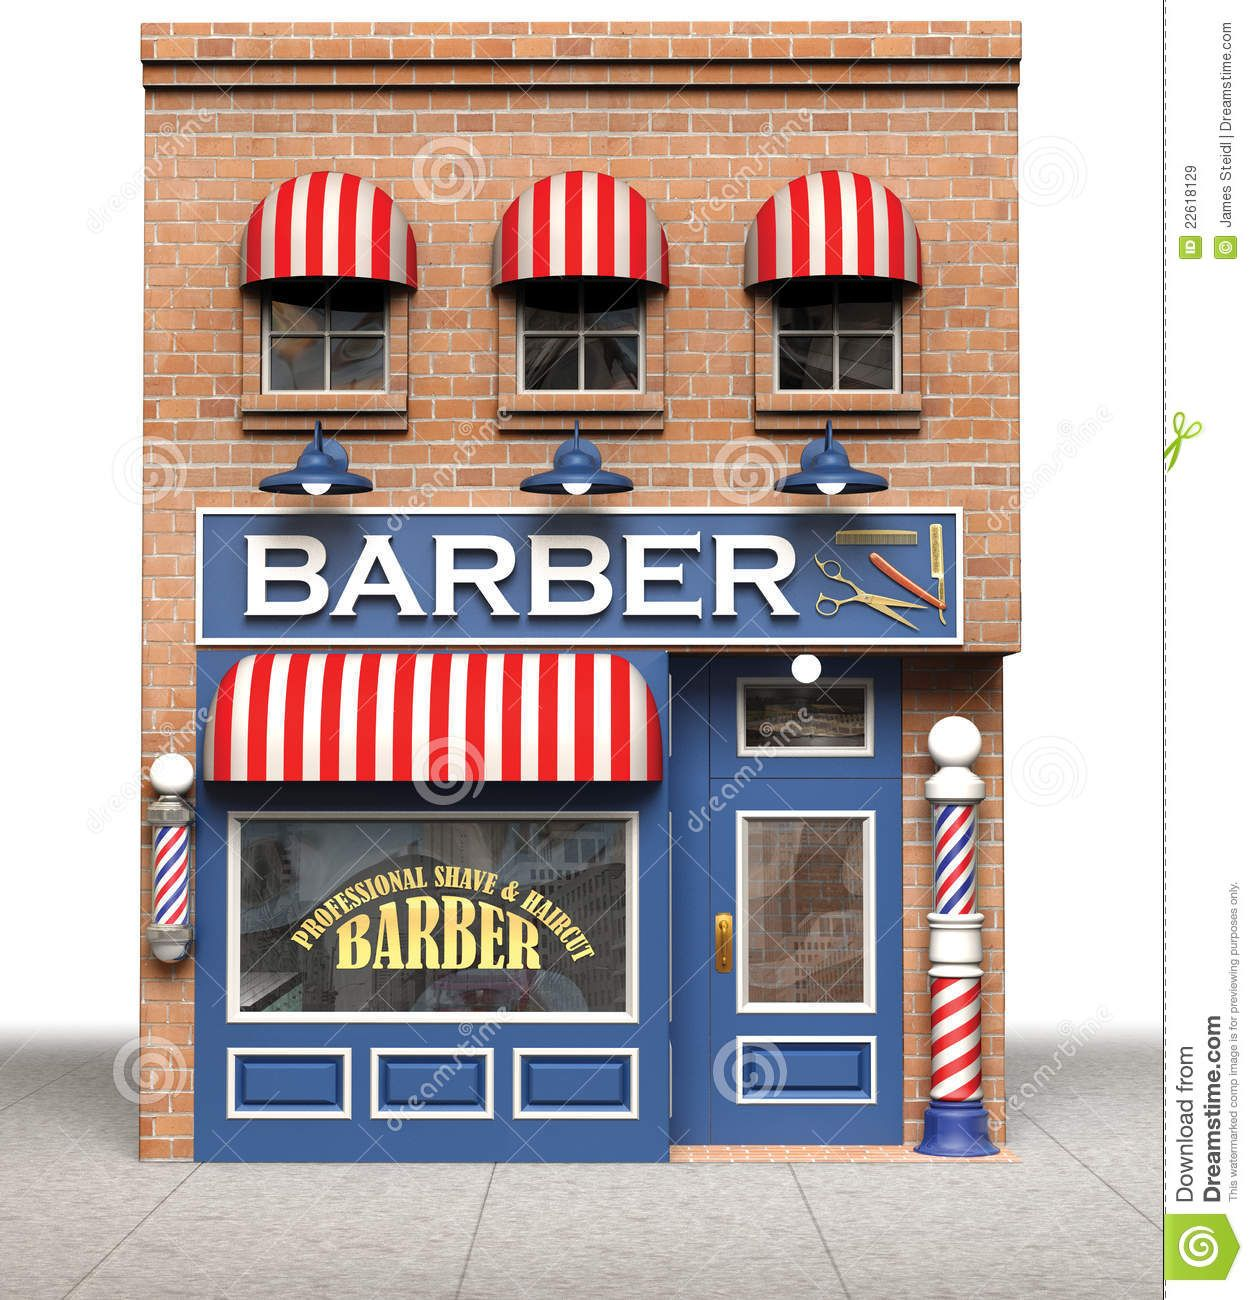 barber shop clipart.